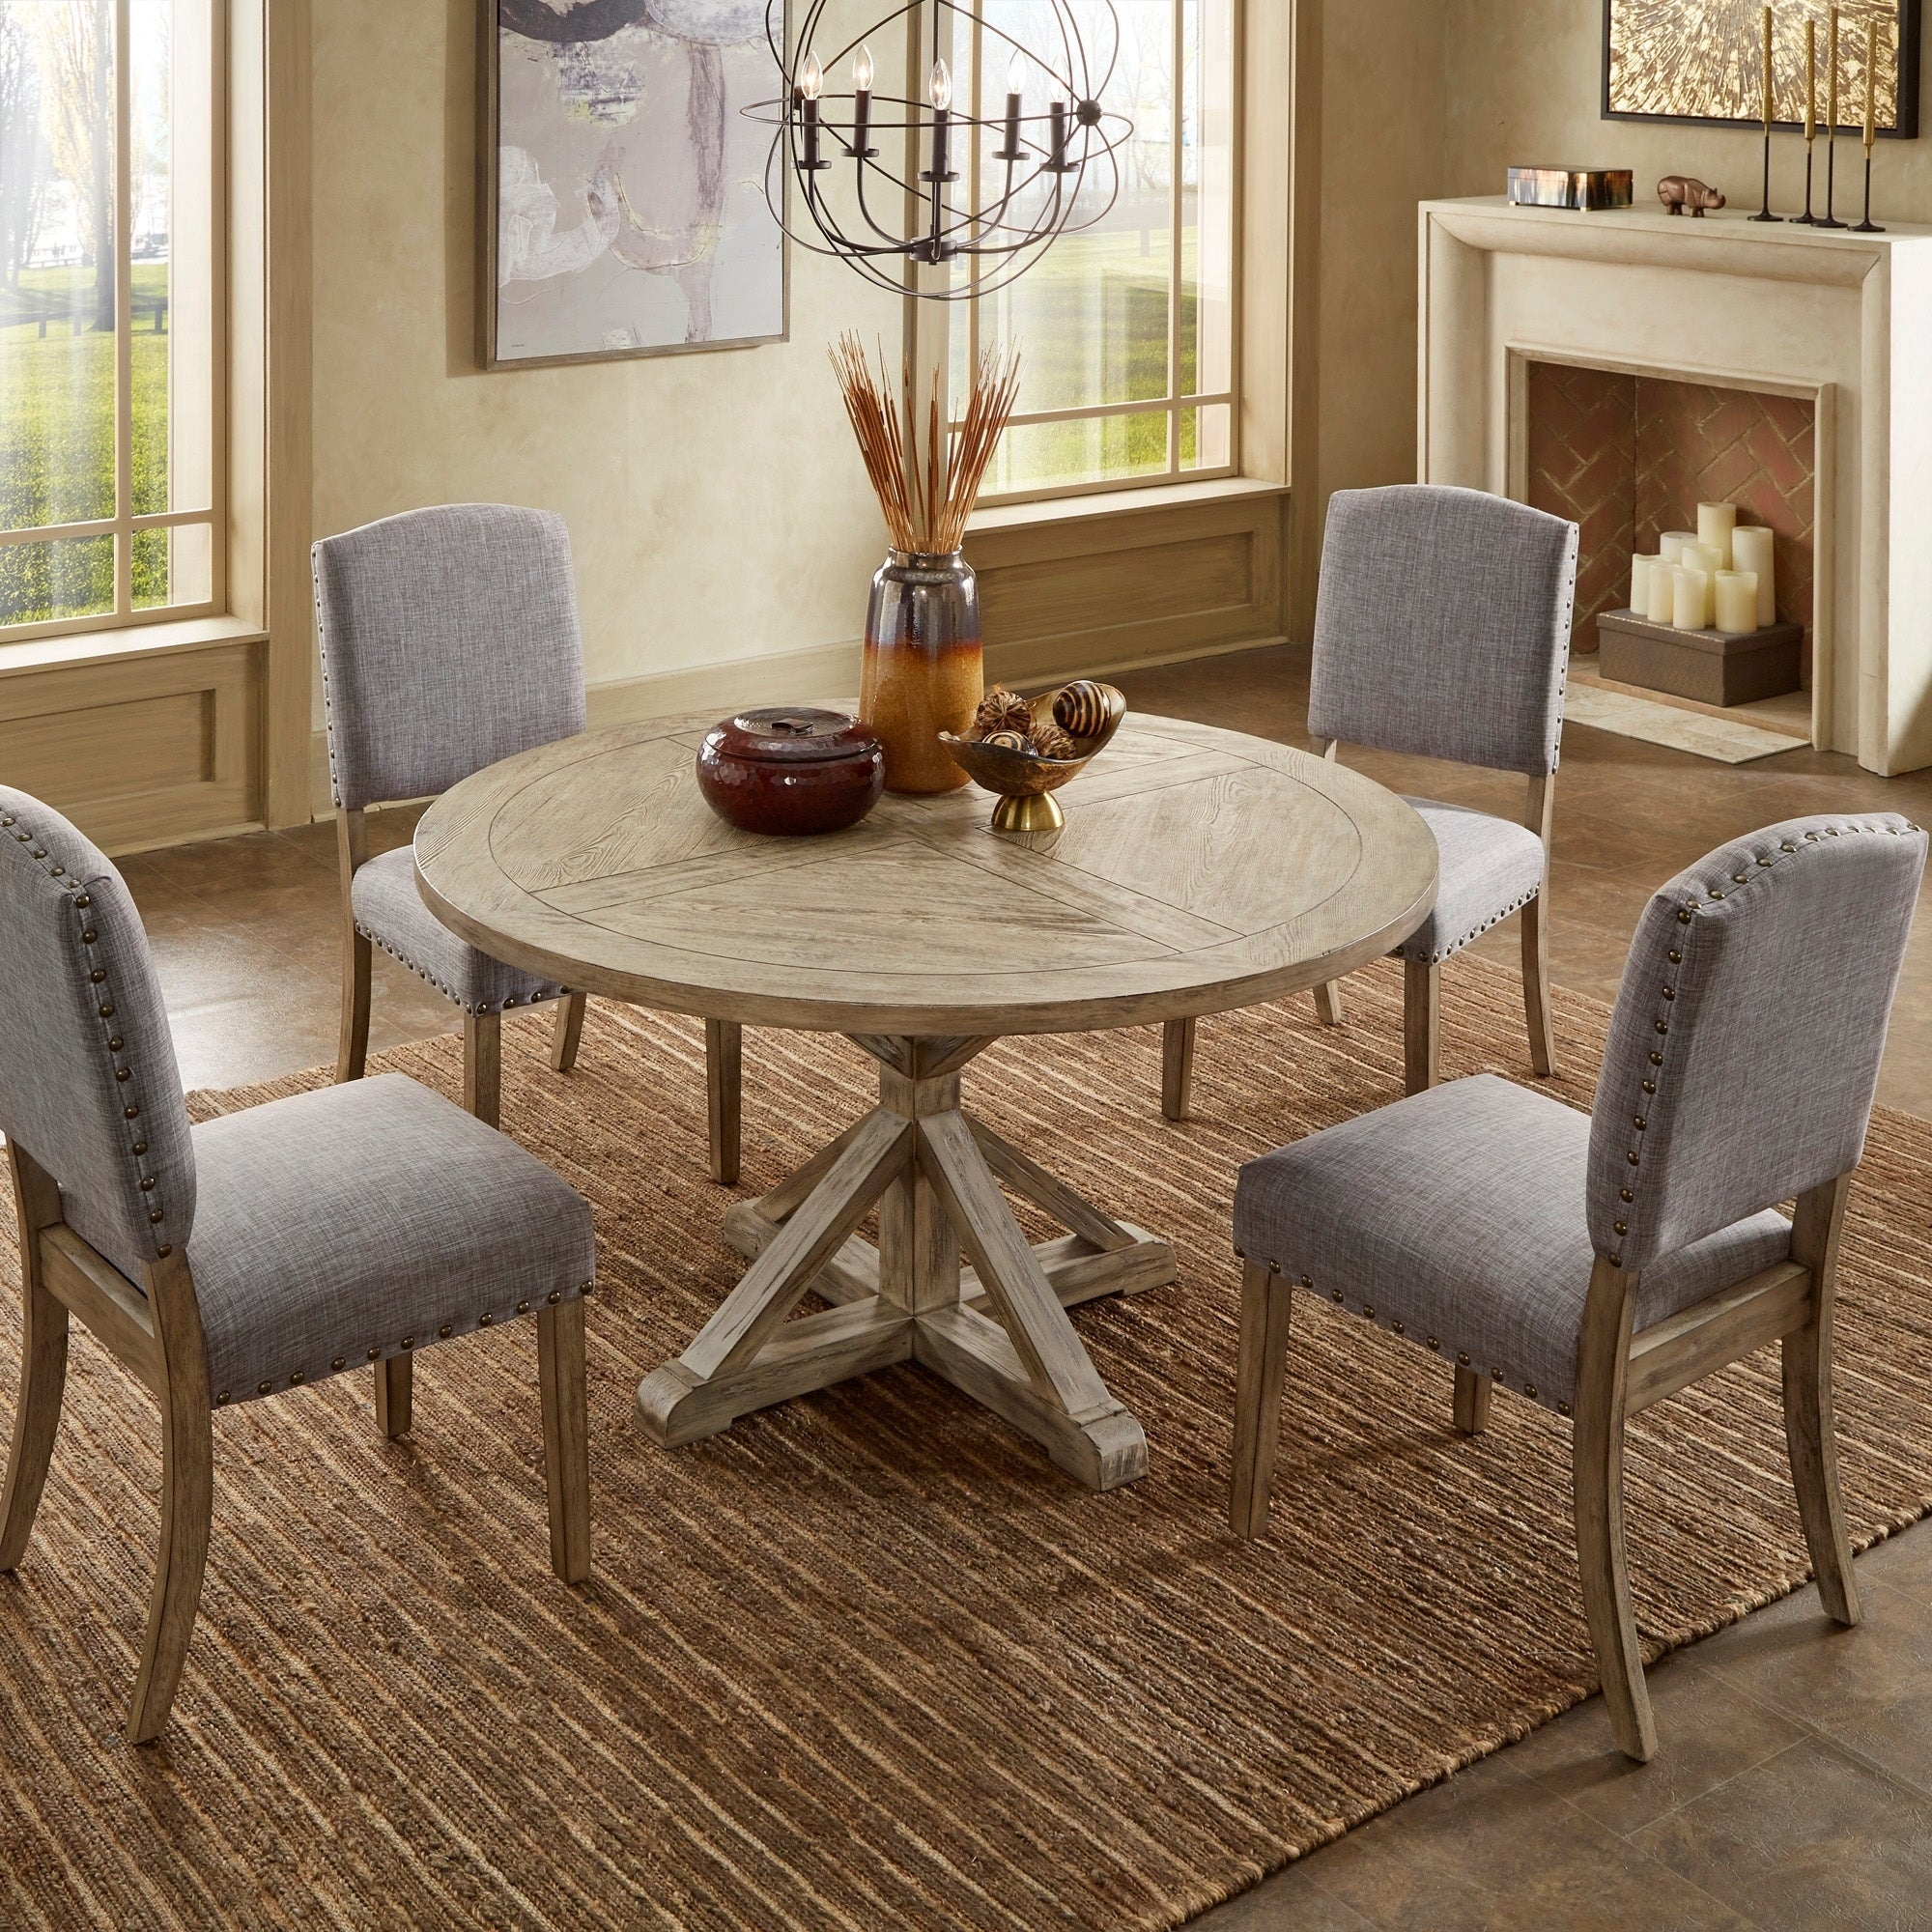 Benchwright Antique Grey Oak Round Dining Setinspire Q Artisan Pertaining To 2018 Blackened Oak Benchwright Dining Tables (Image 3 of 25)